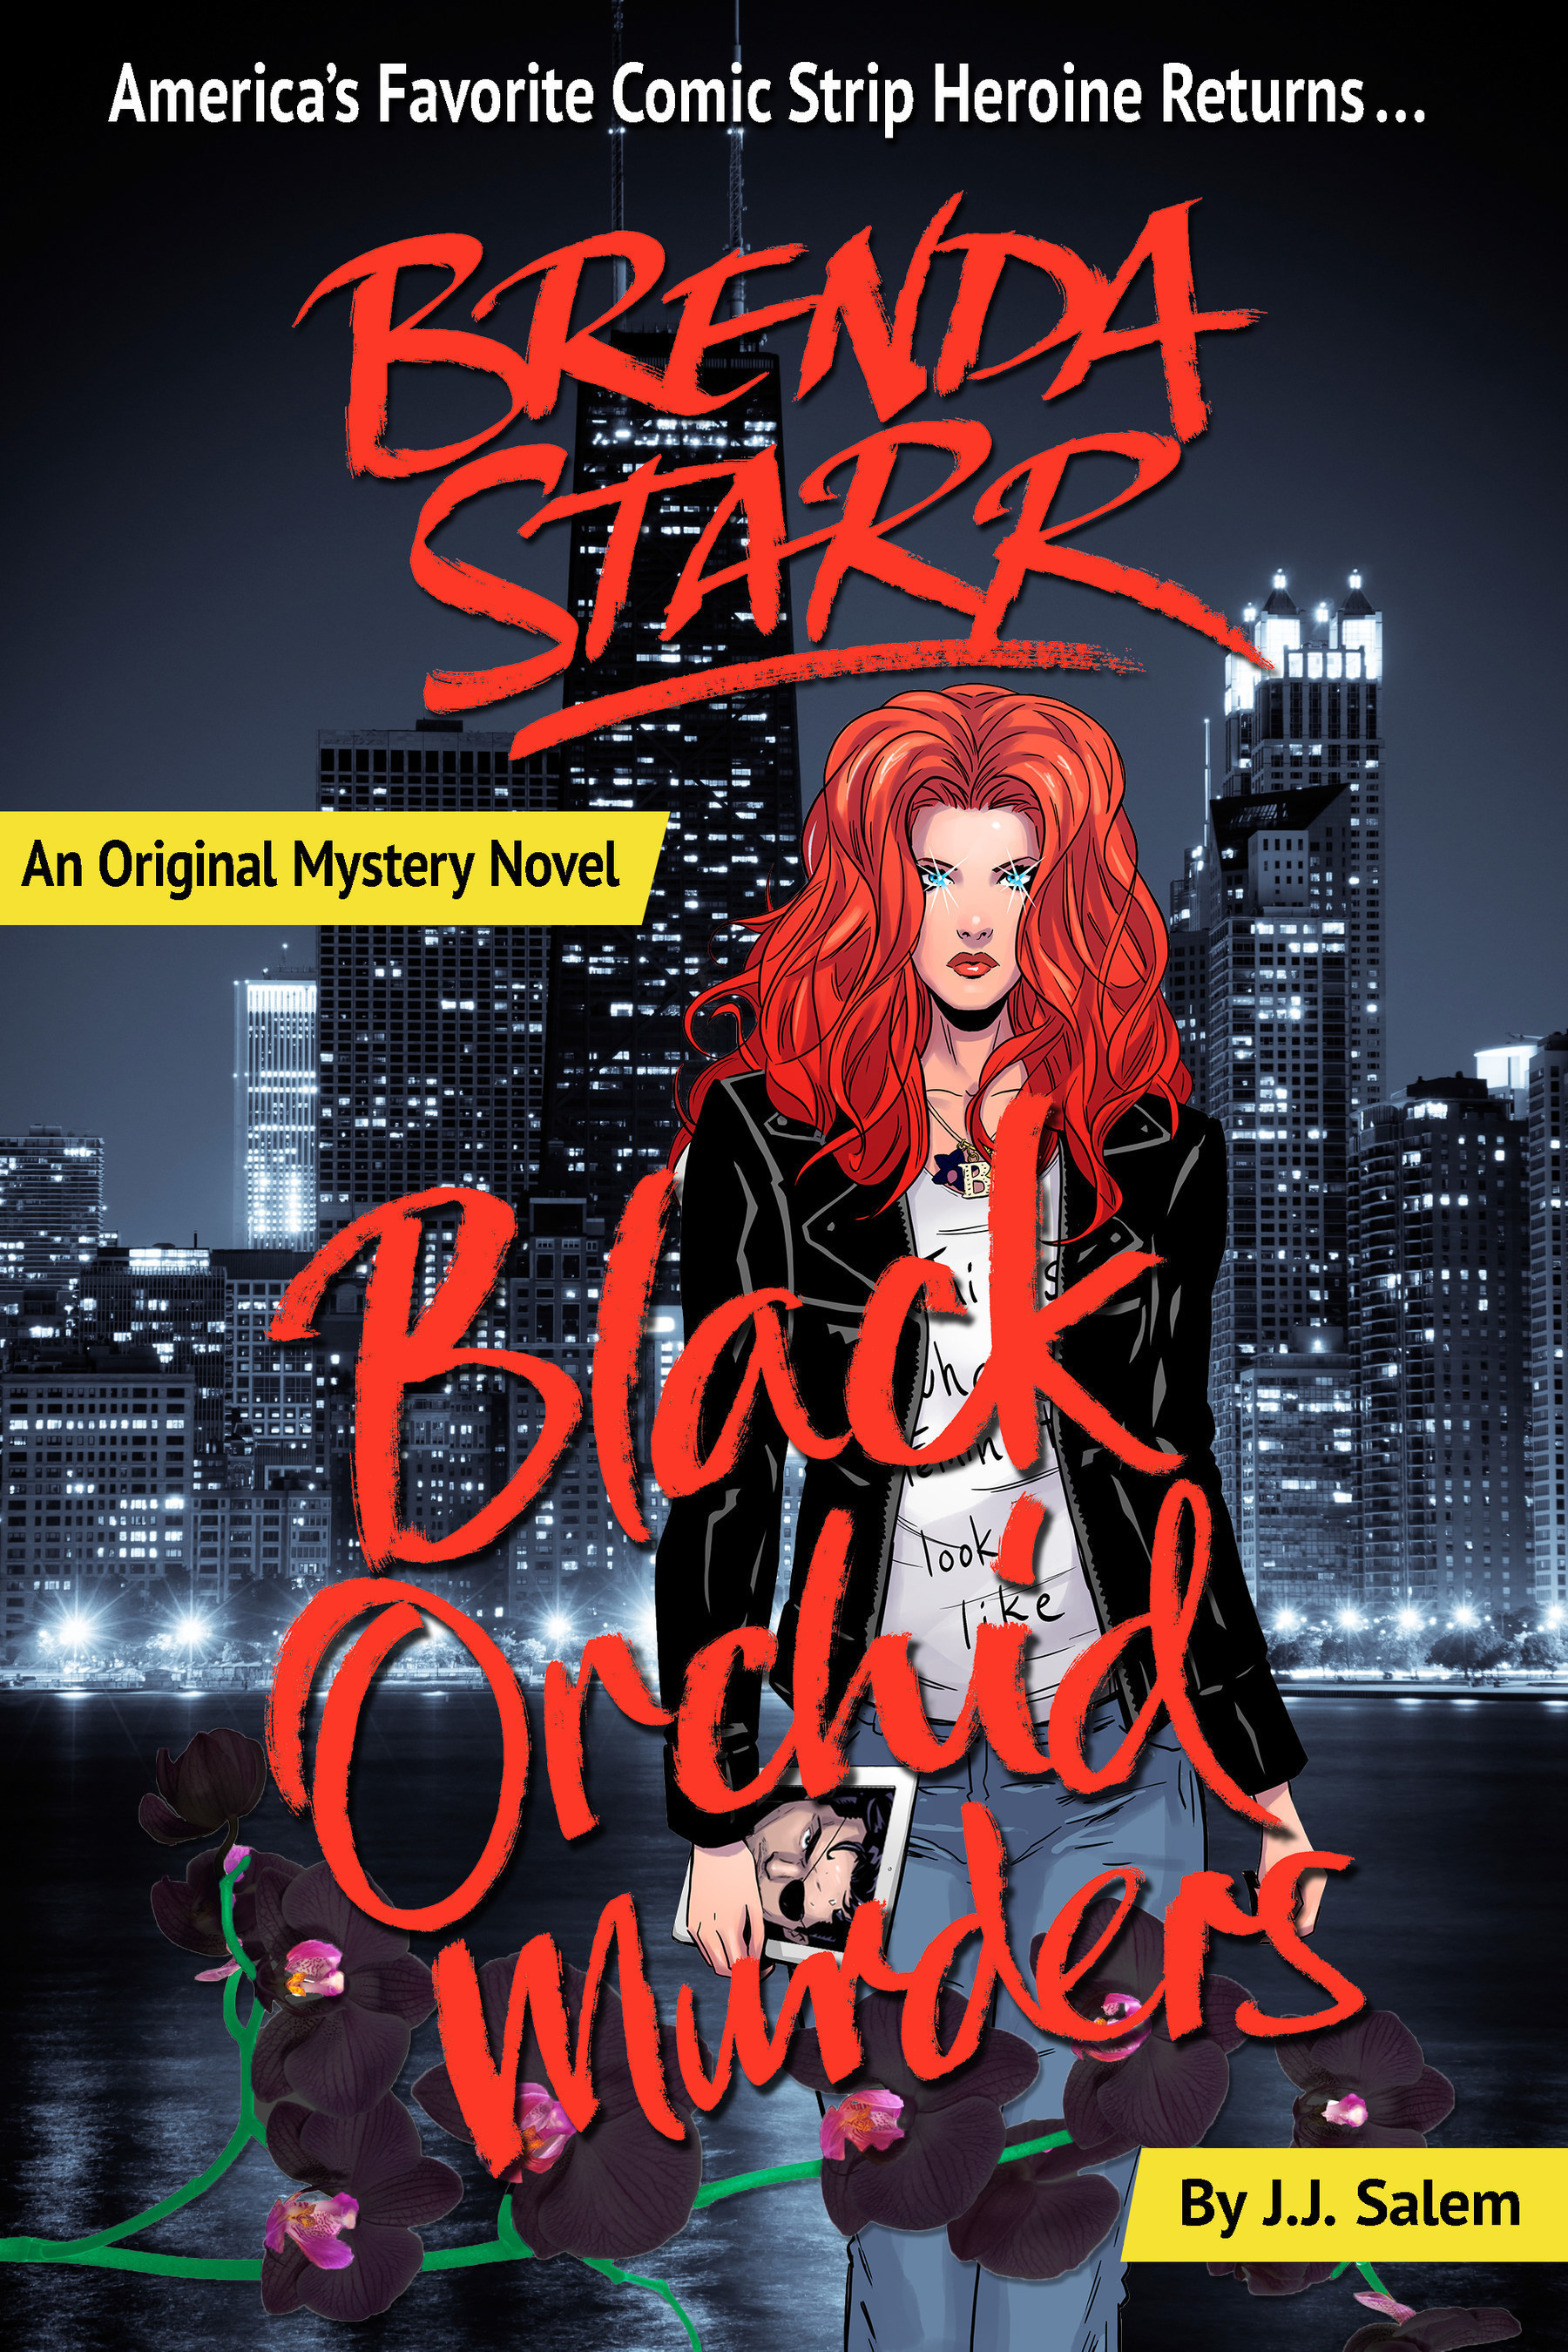 Comic Strip Heroine Brenda Starr Returns